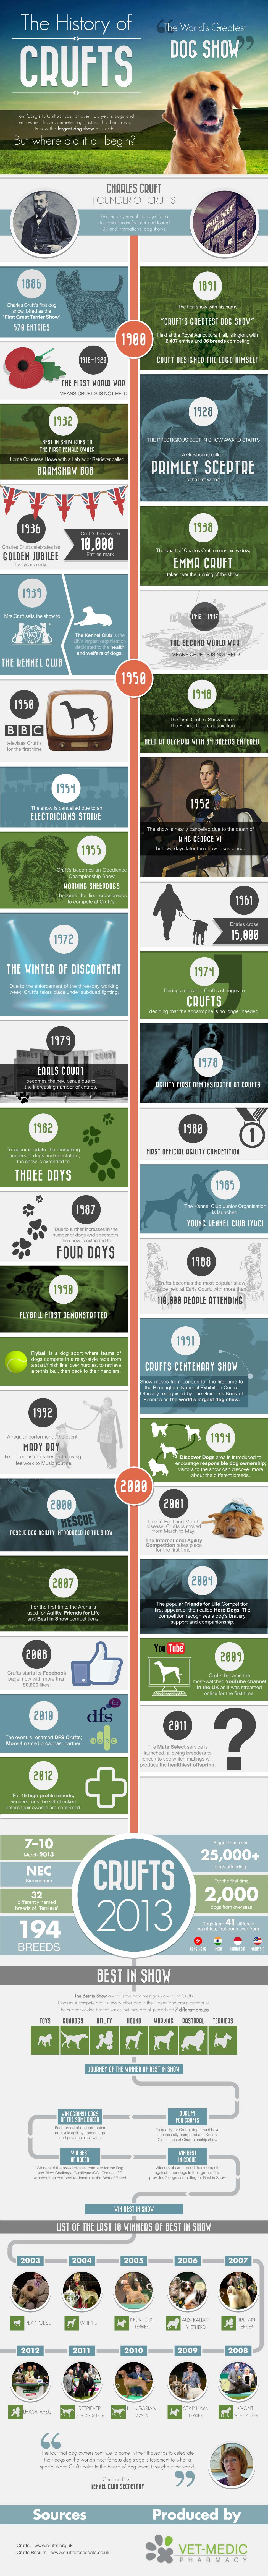 Crufts Dog Show History-Infographic